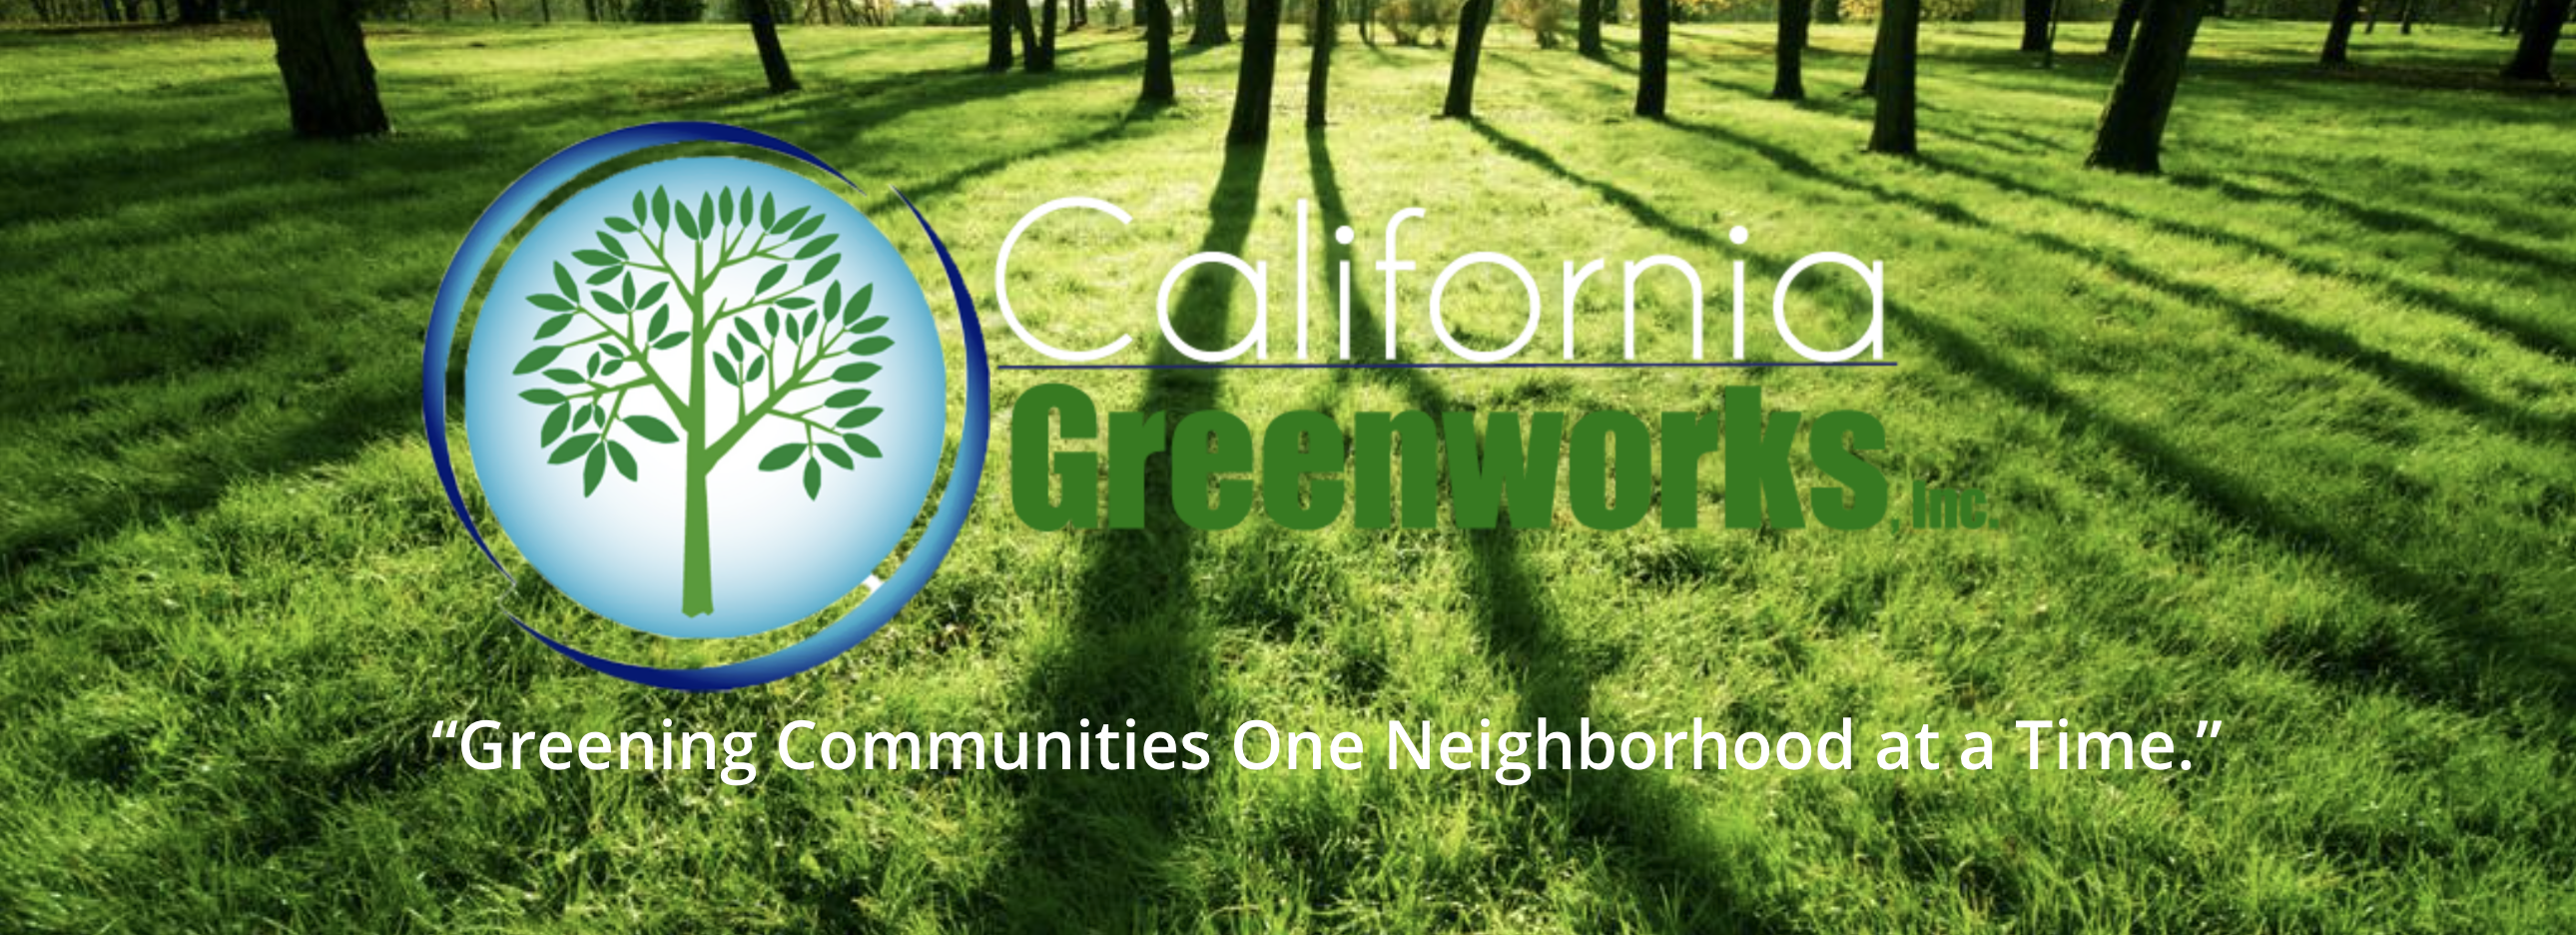 California Greenworks: Making life healthier one person at a time